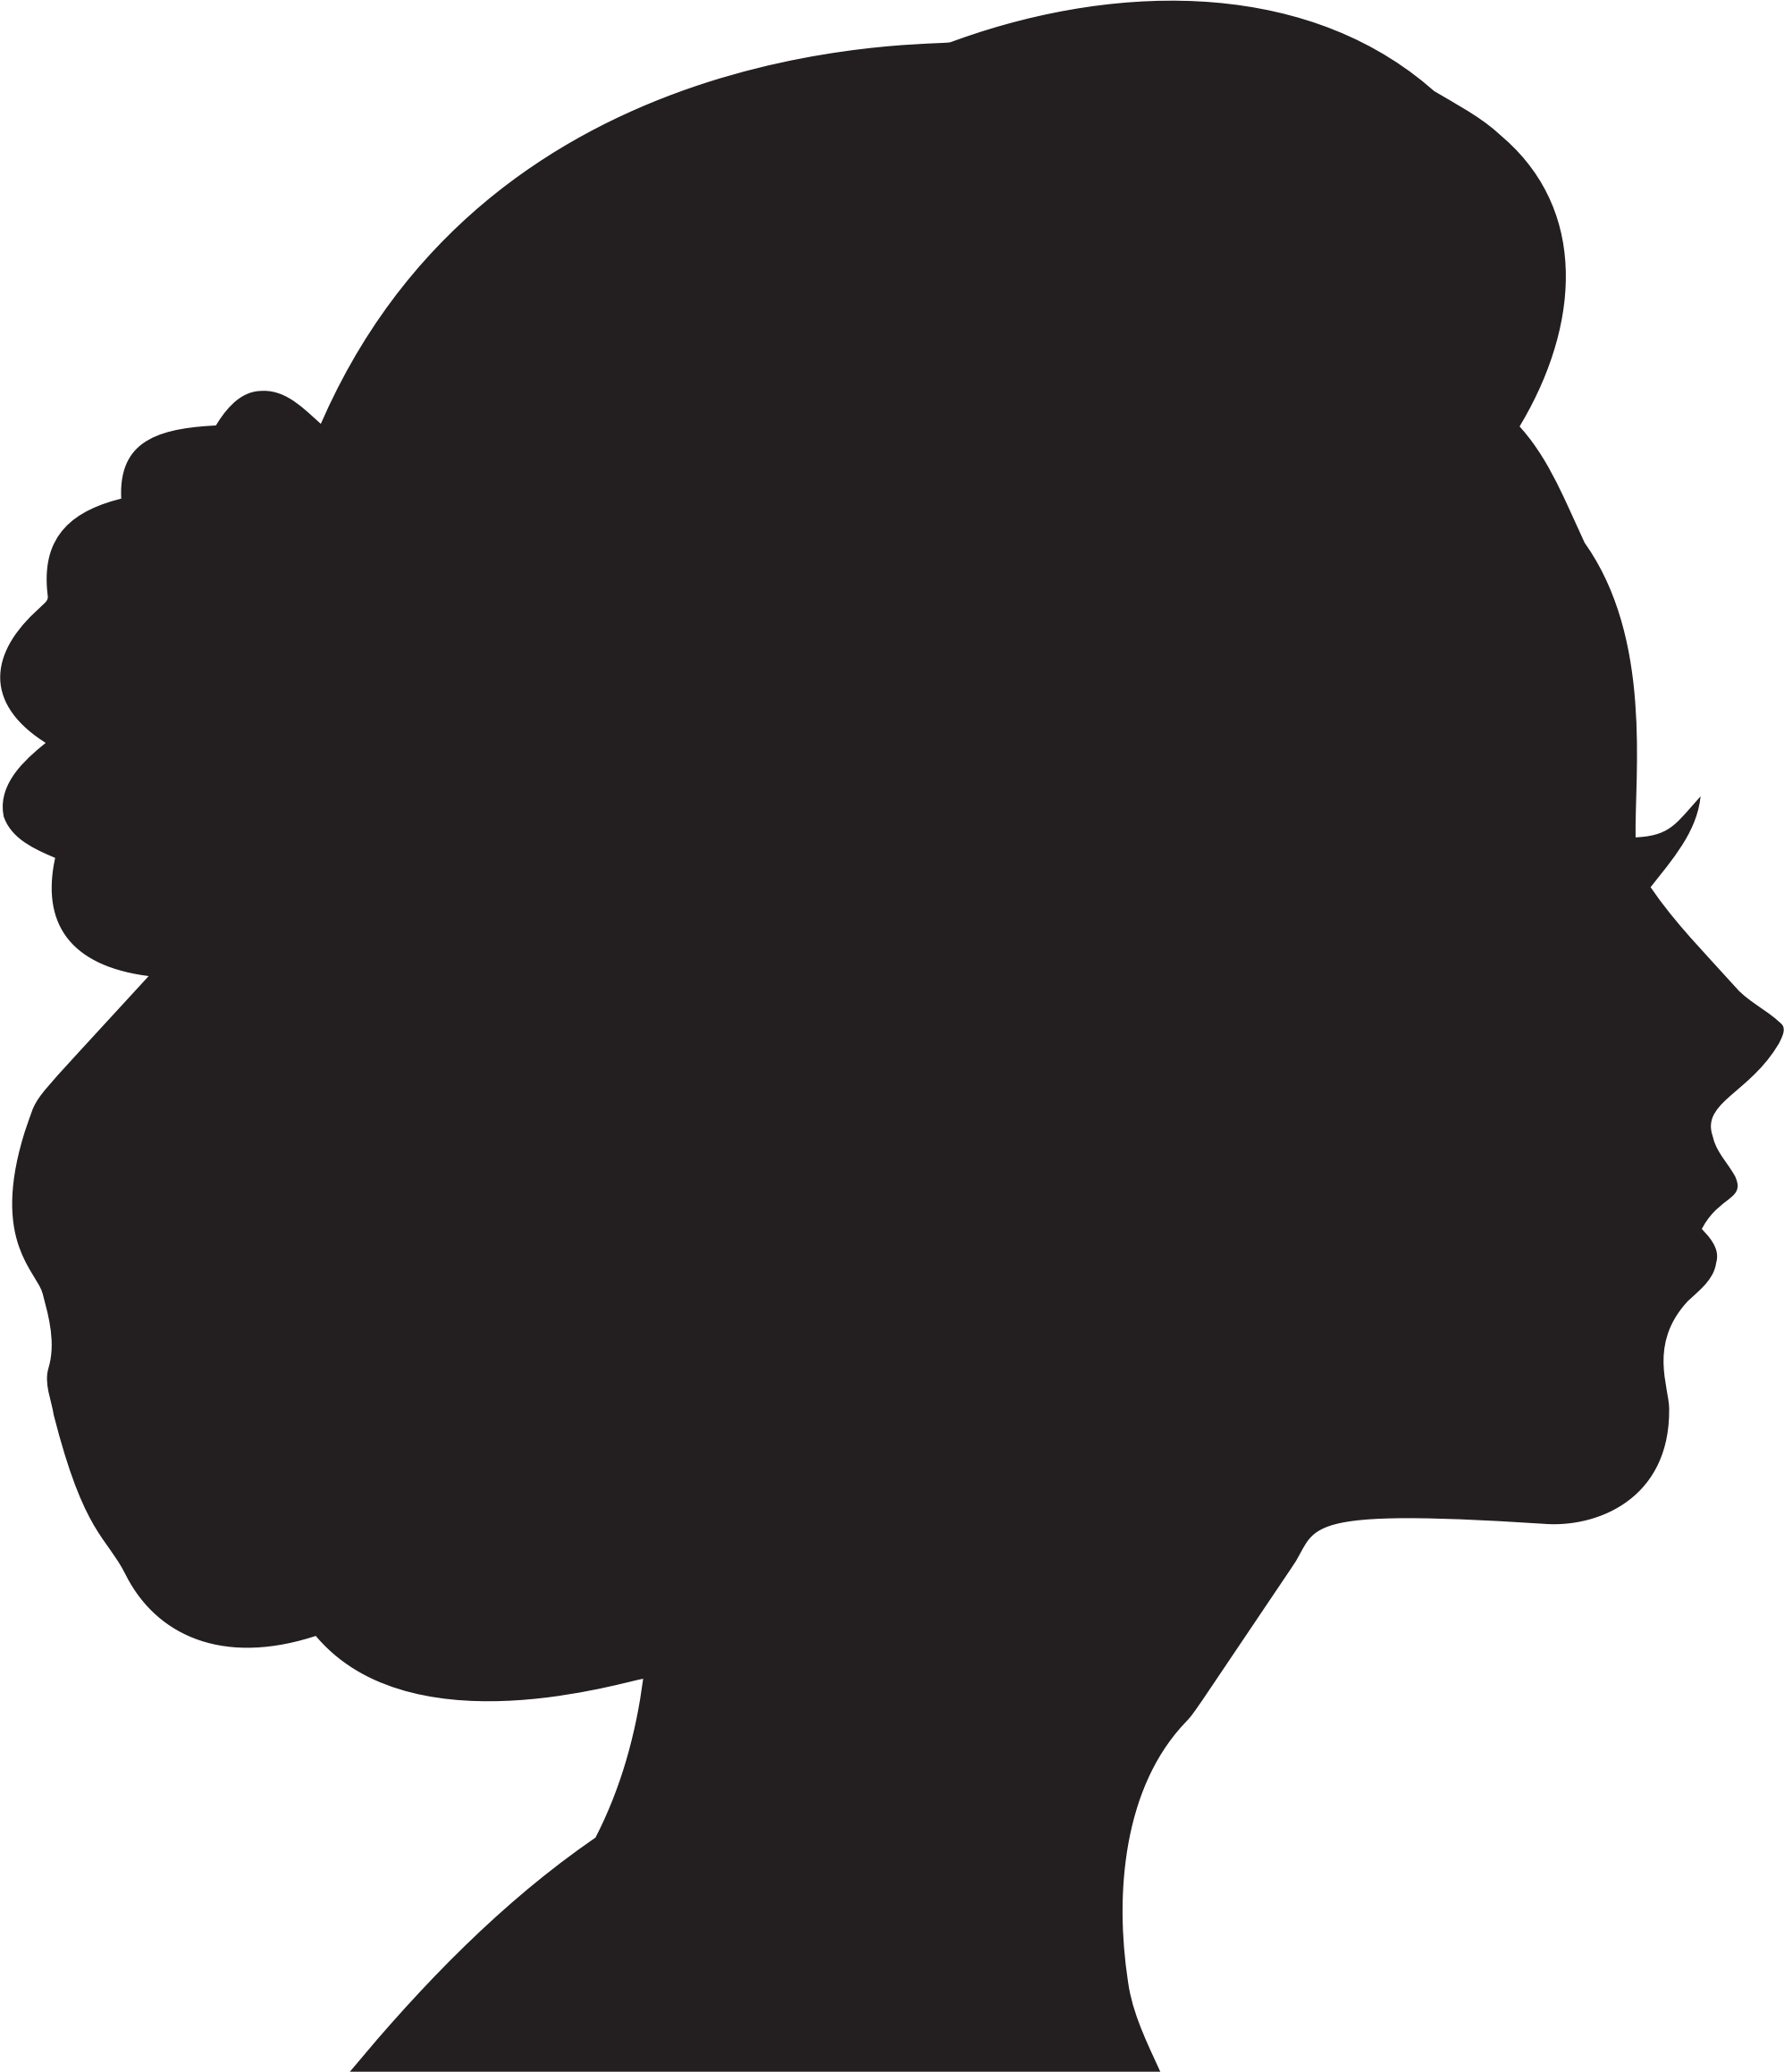 Woman Head Silhouette